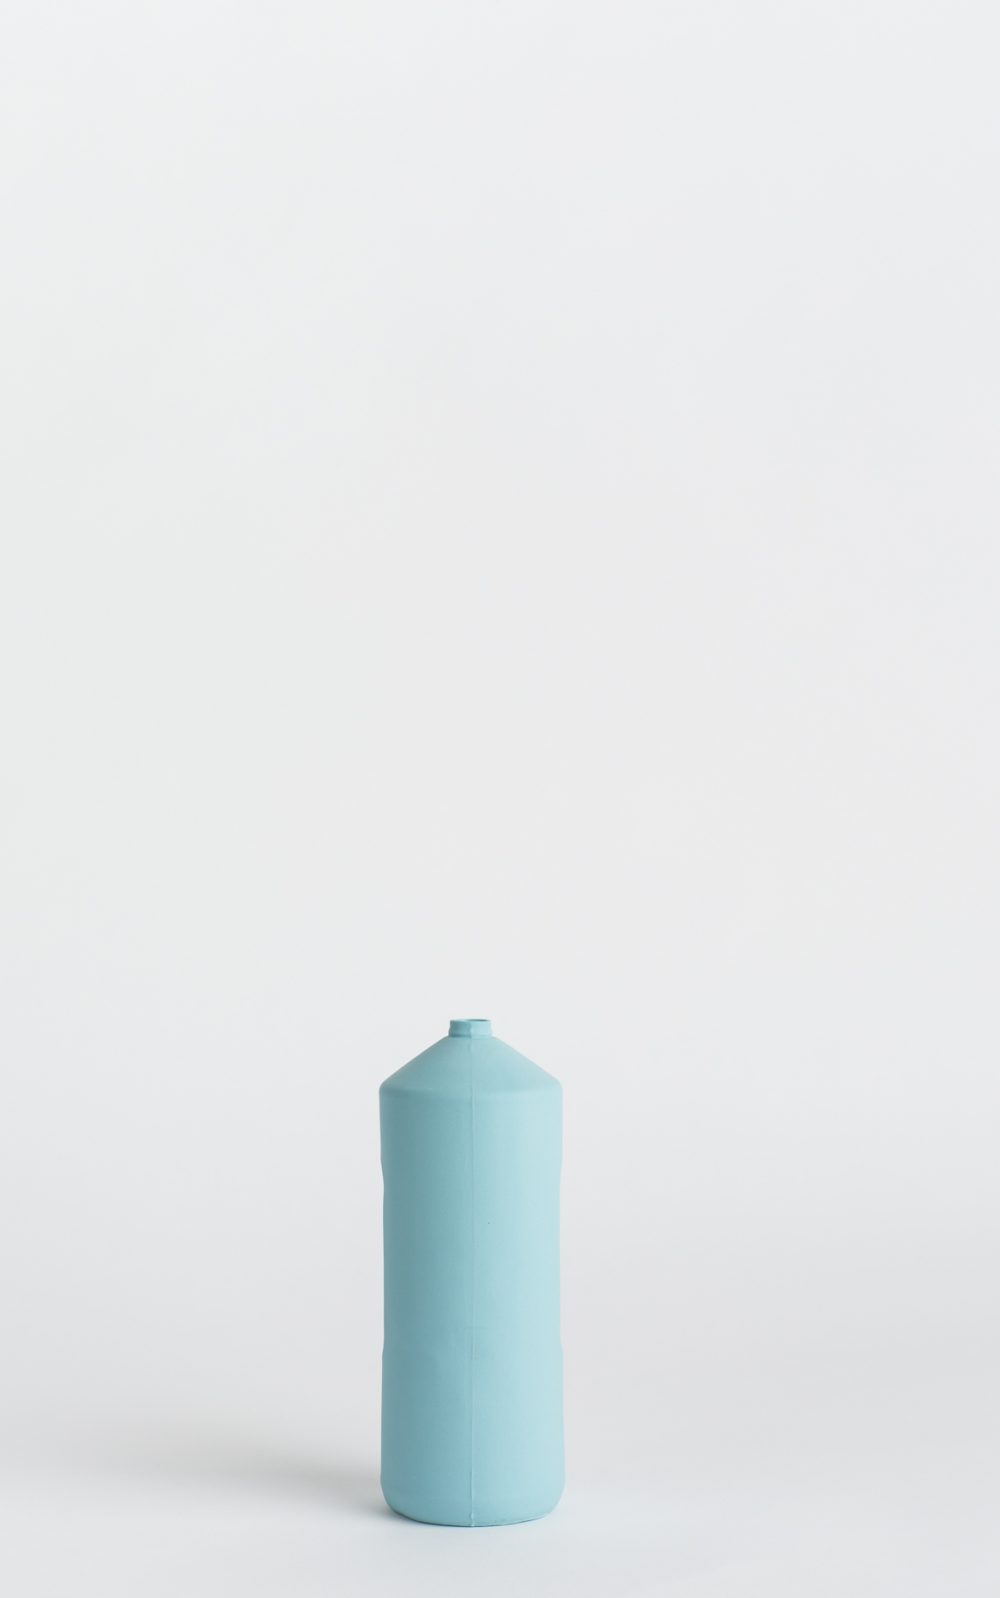 bottle vase #2 light blue